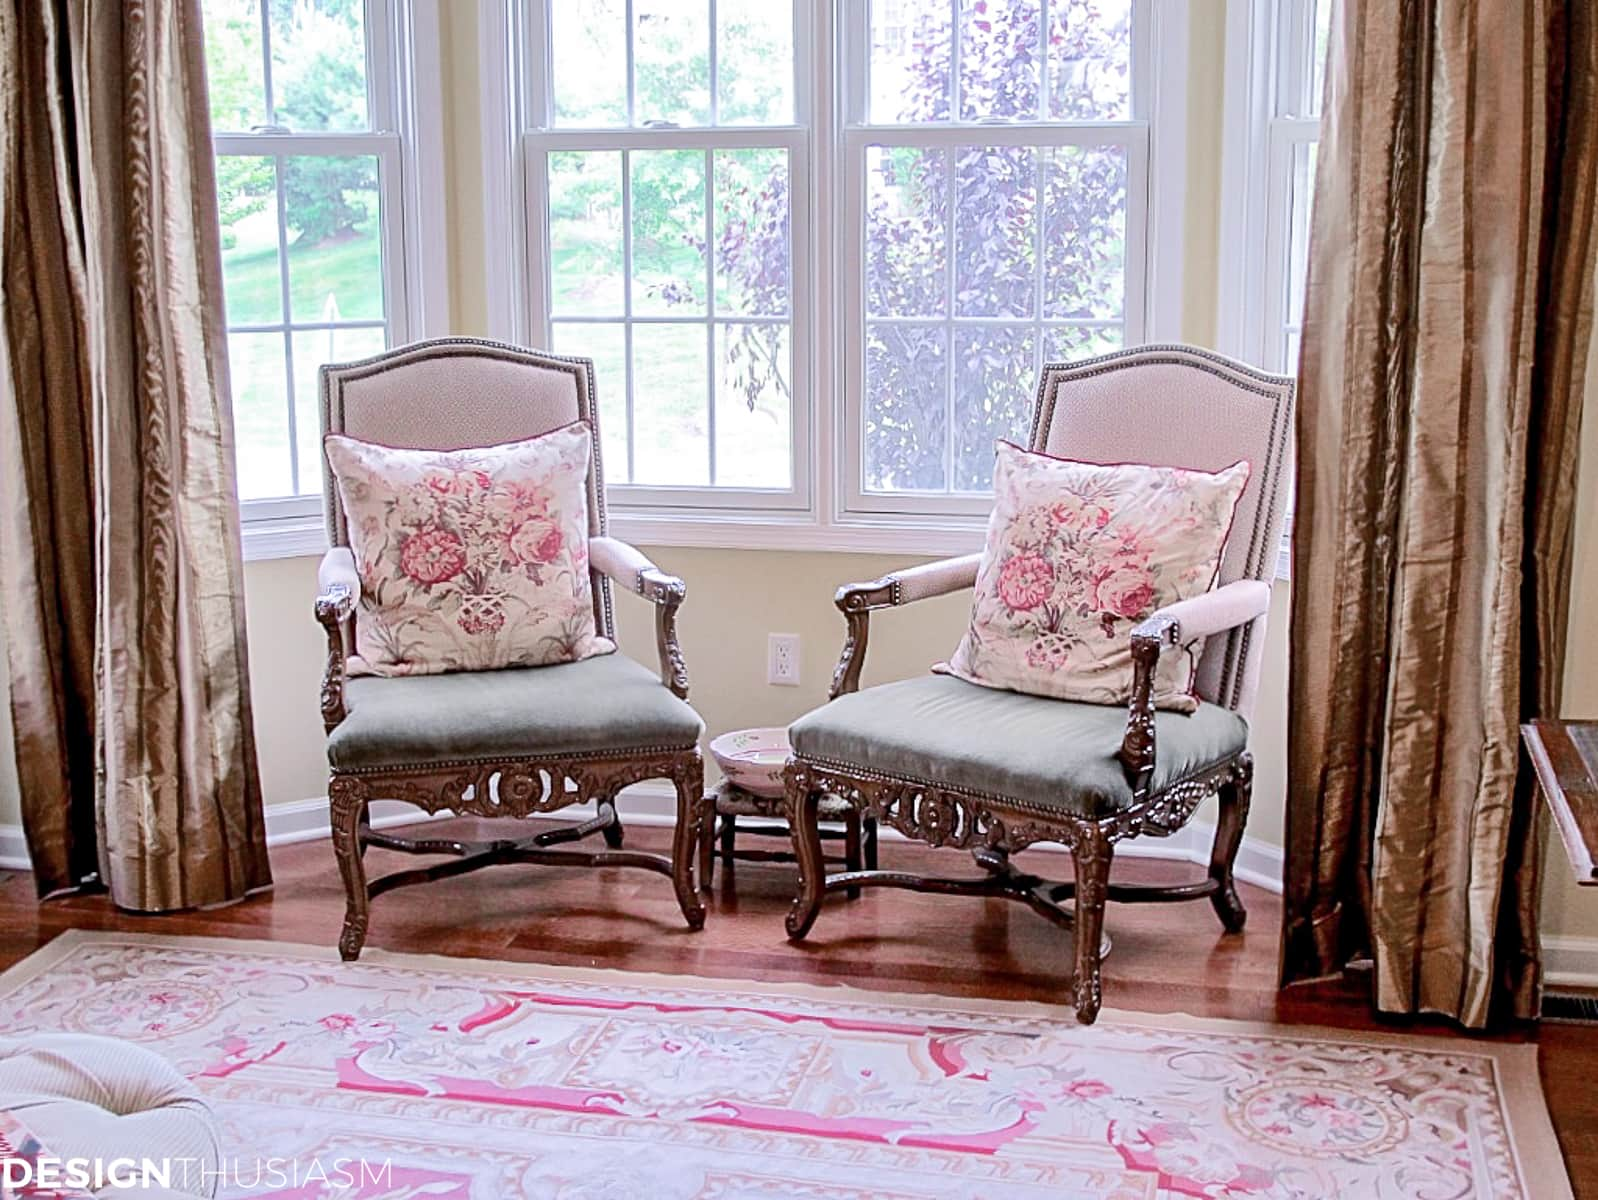 throne chairs in the living room